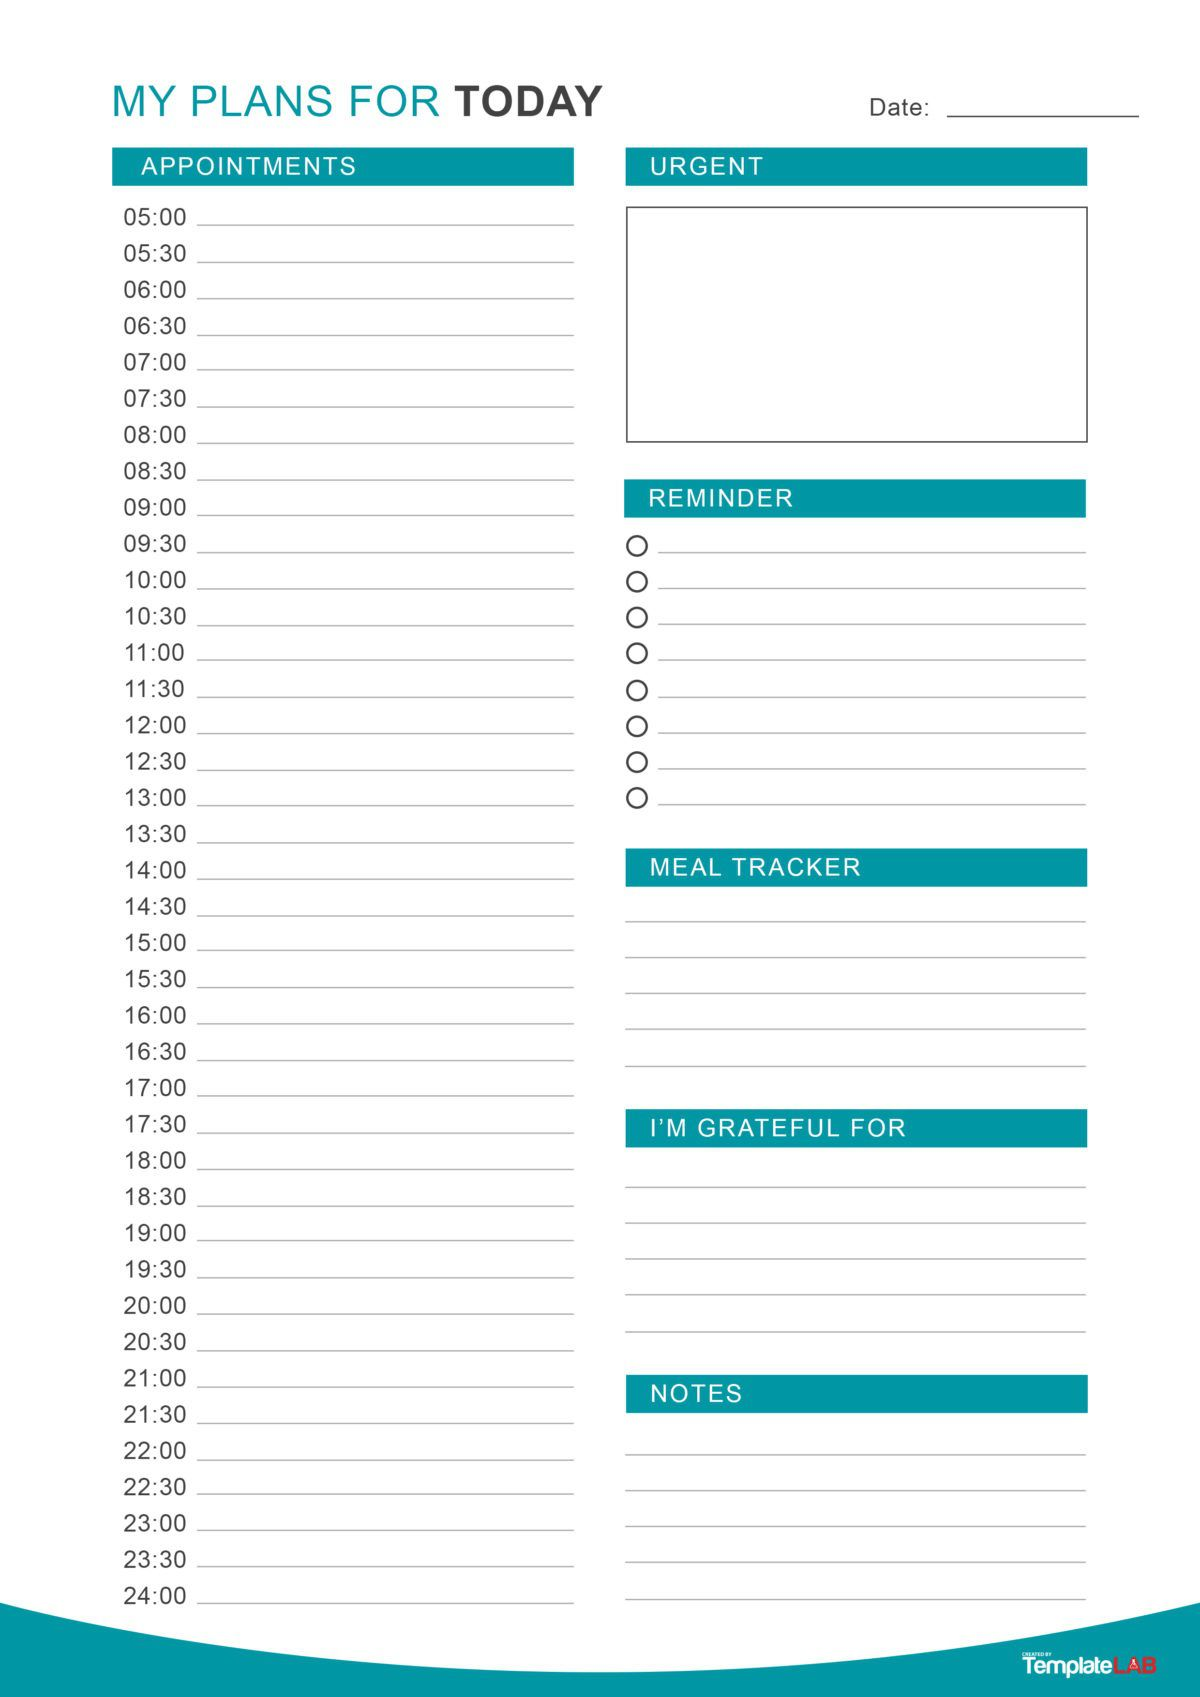 006 Fascinating Daily Schedule Template Printable Picture Full